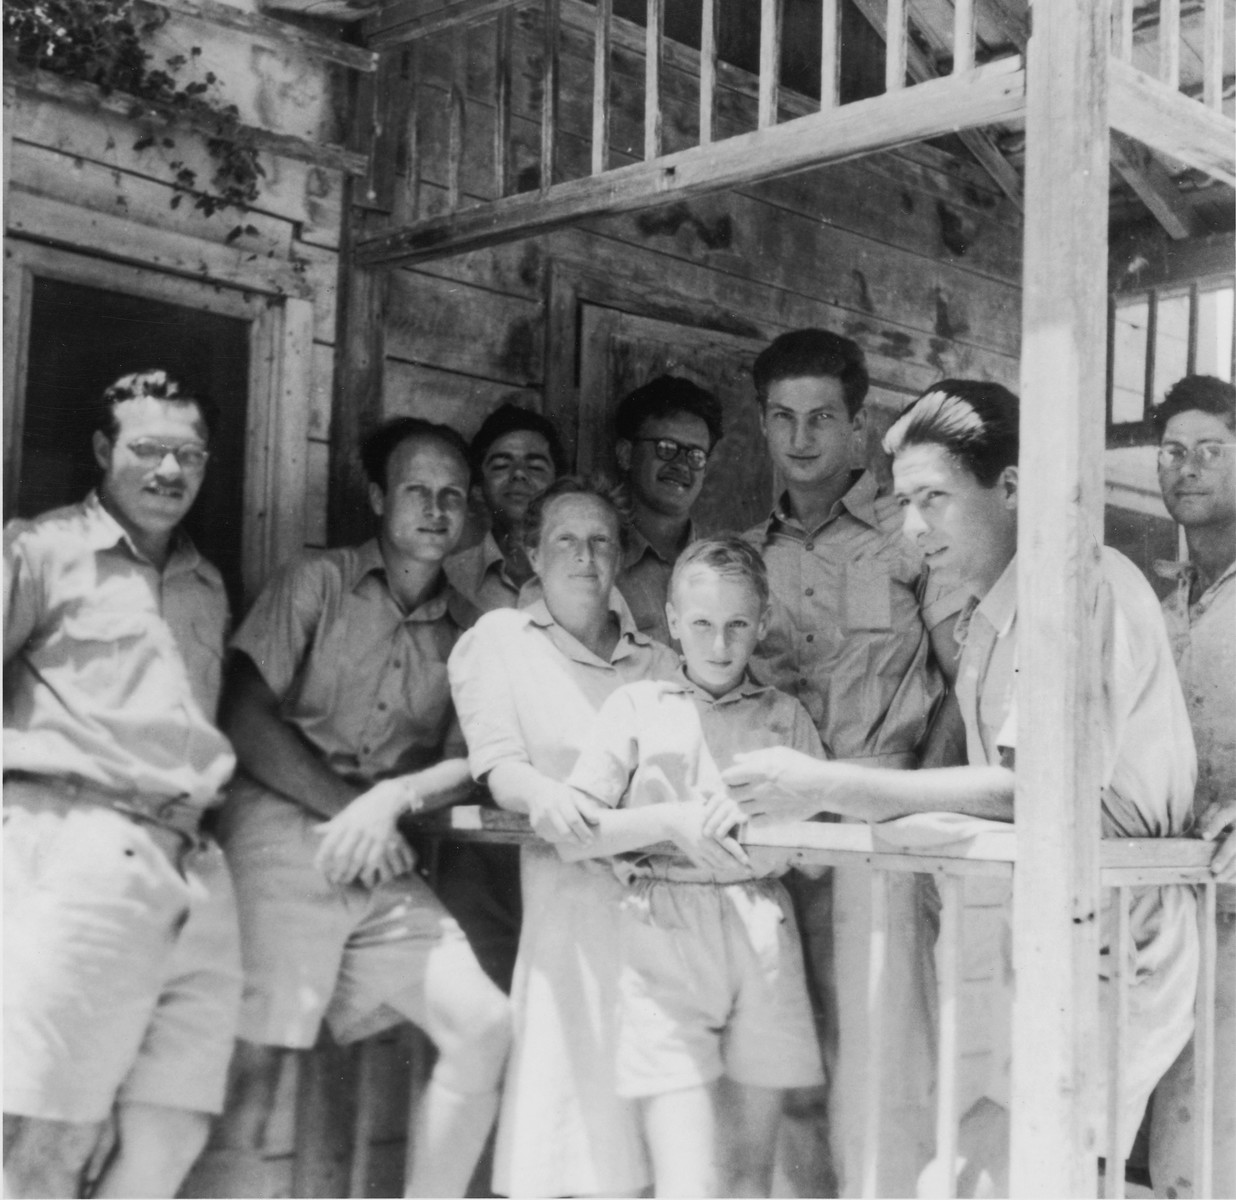 Exodus 1947 crew member Bernard Marks (third from the right) poses with a group of Palestinan Jews while in hiding at Kibbutz Ein Hashofet.